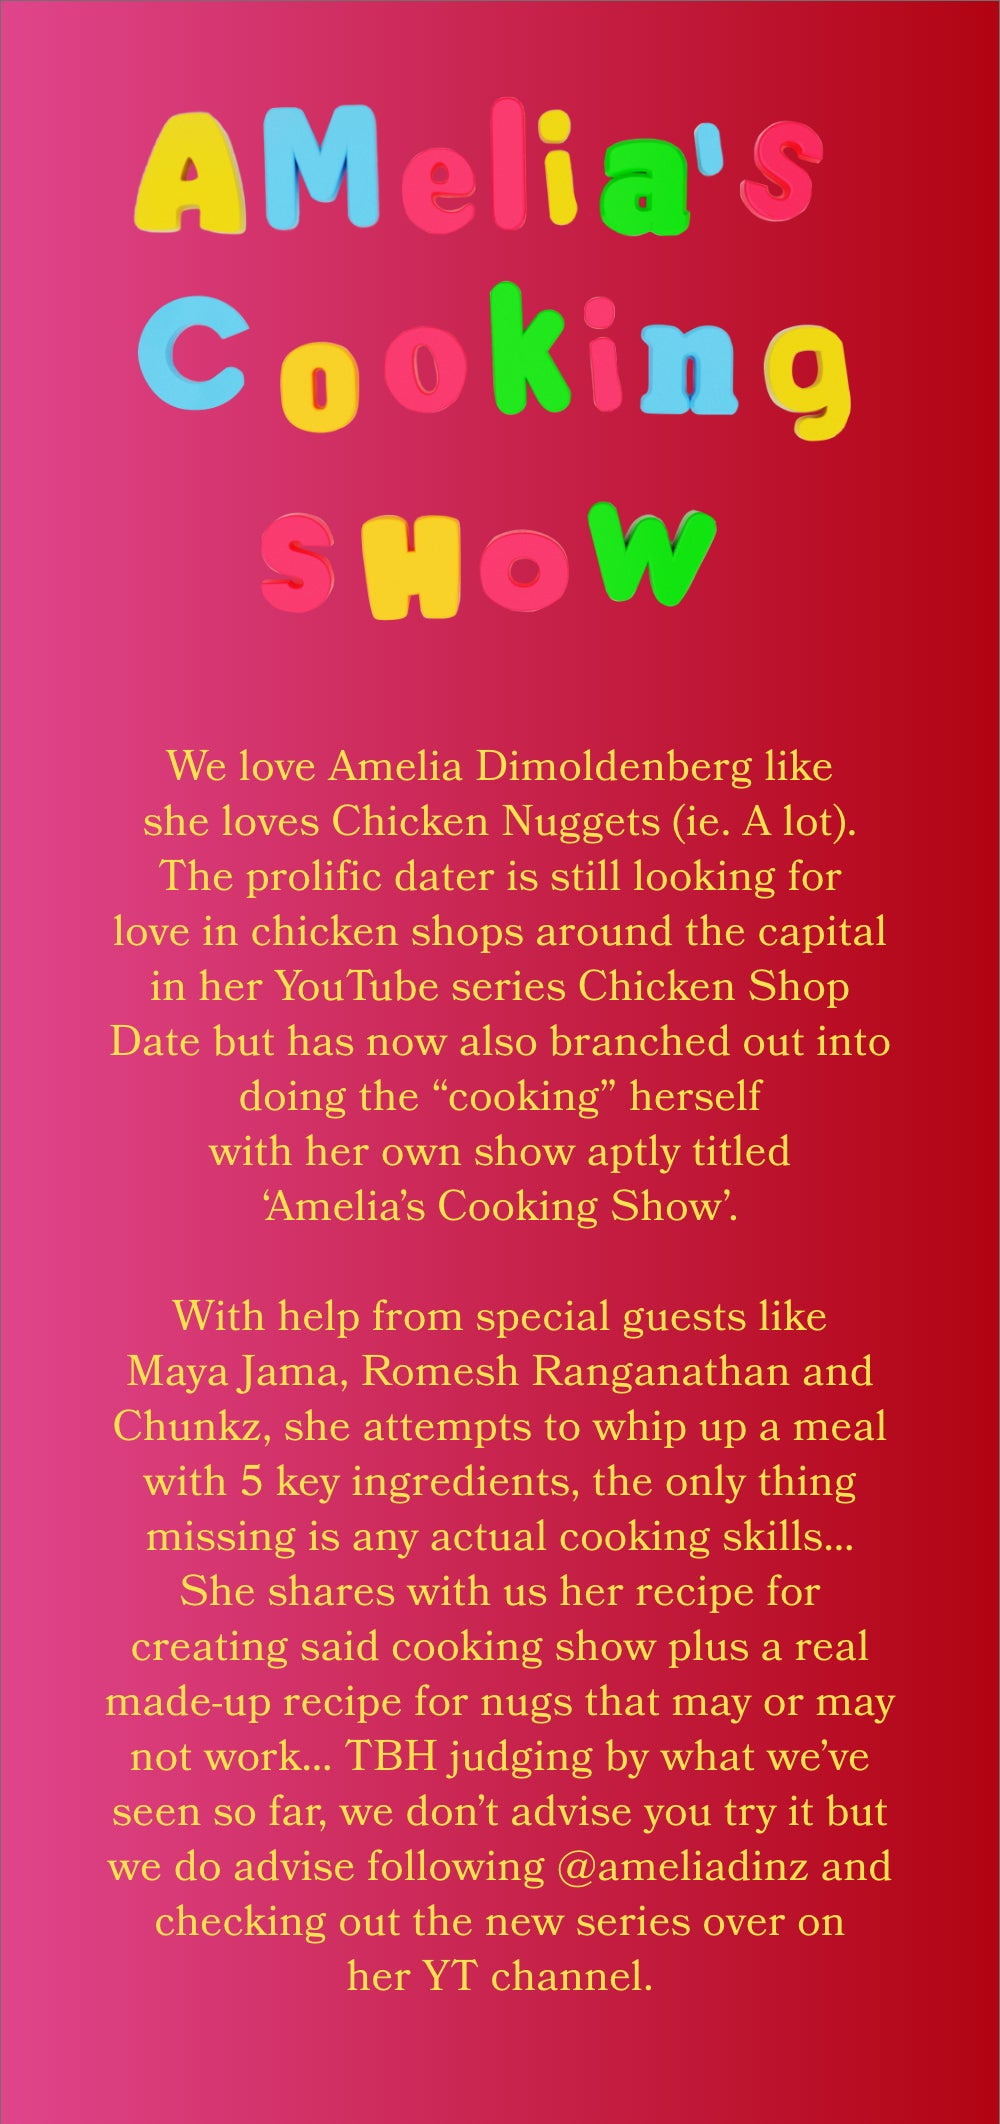 Amelia's cooking show